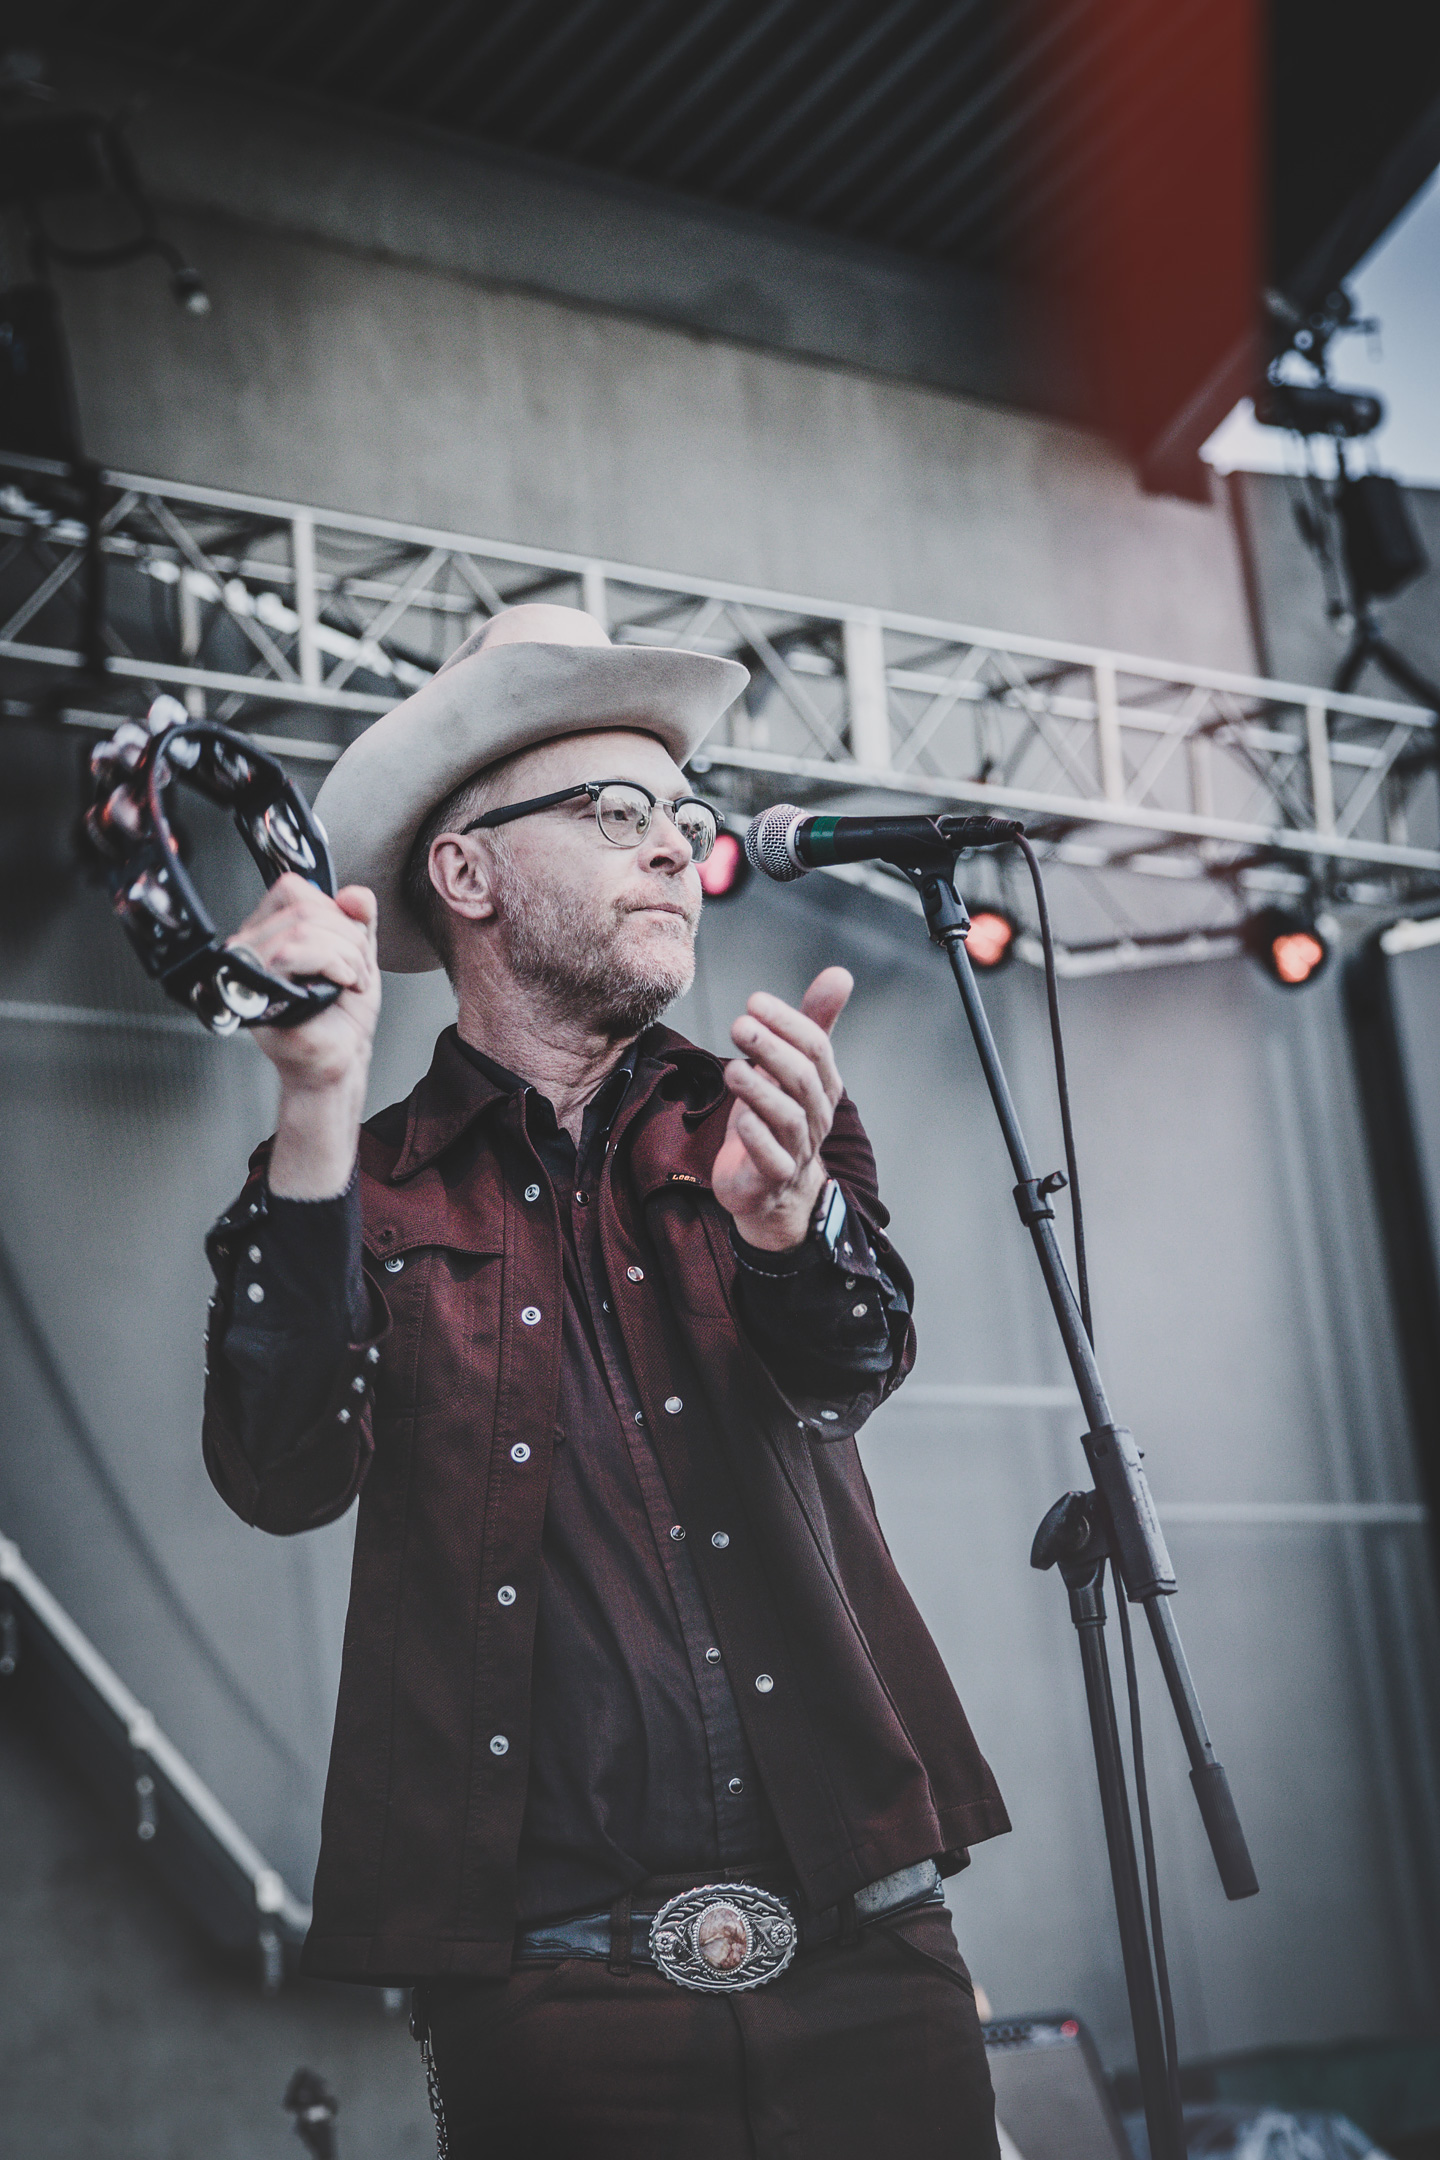 Slim Cessna's Auto Club & Strange Americans - Concert Photos from Levitt Denver